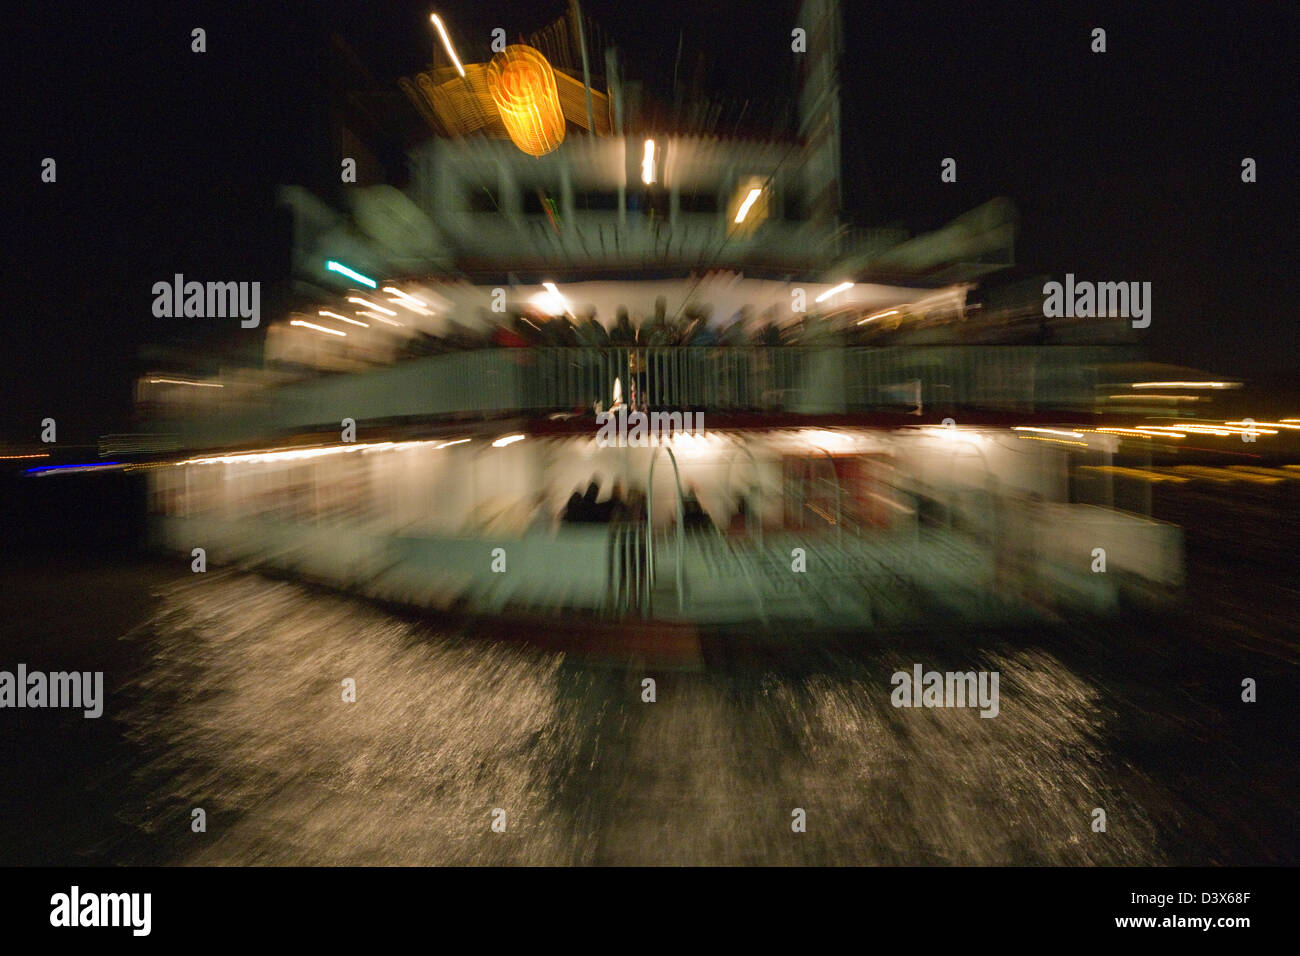 A Thames Charter cruise boat at night Stock Photo